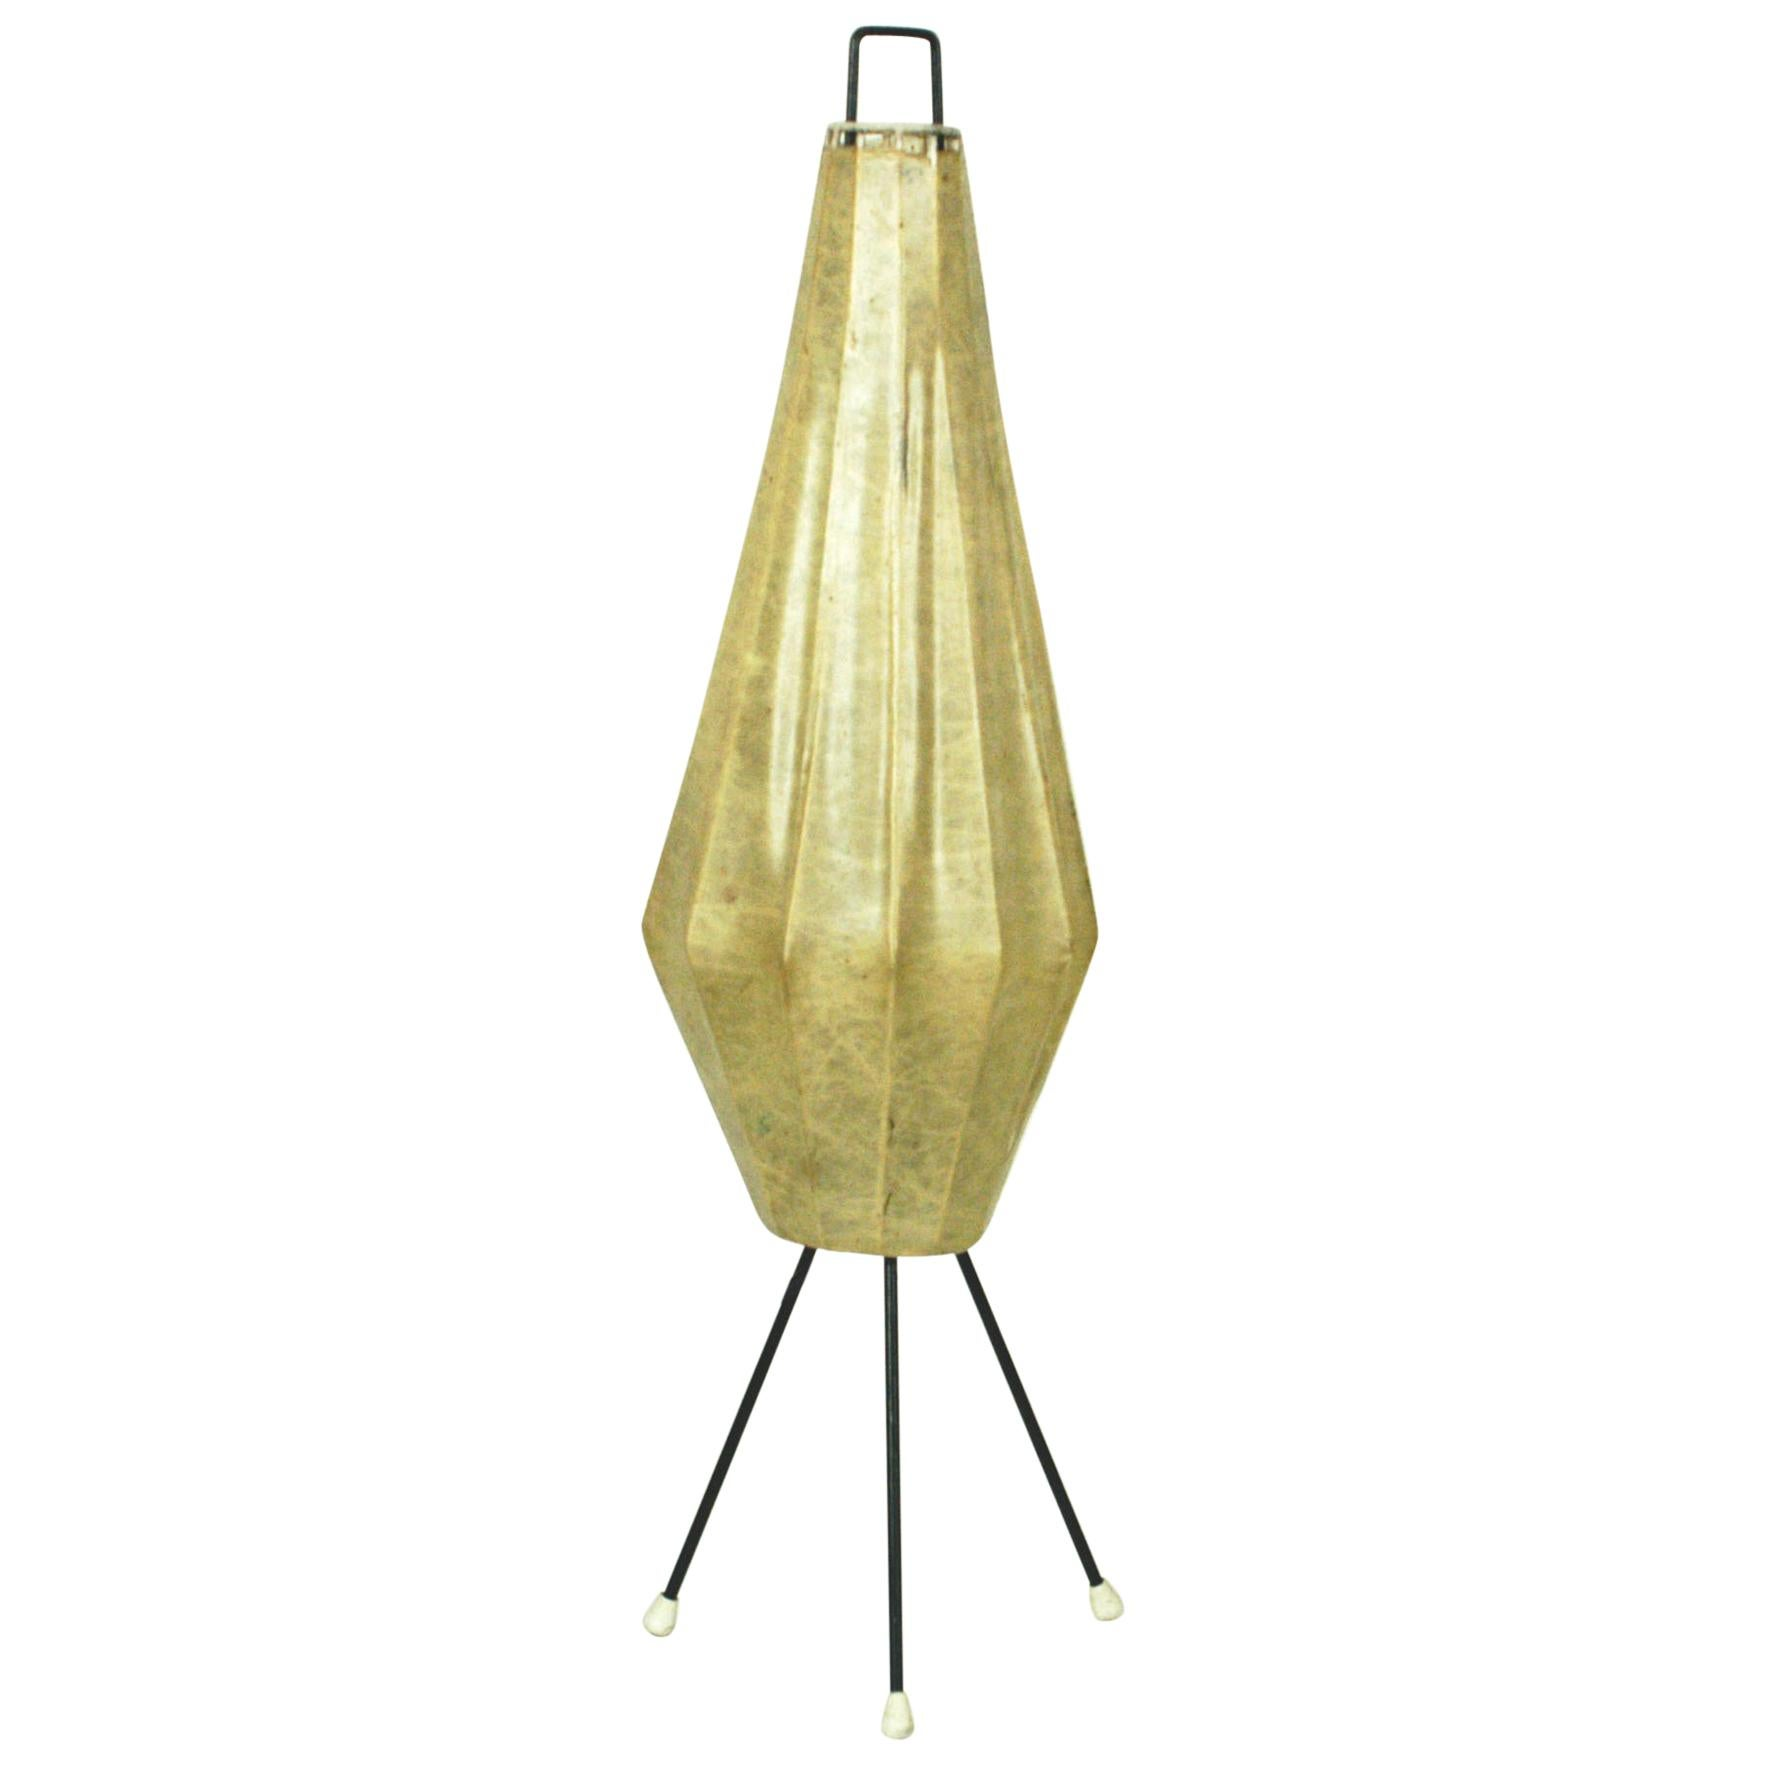 Table Lamp Cocoon Tripod For Artimeta HKlingele Midcentury By nOPwyNvm80